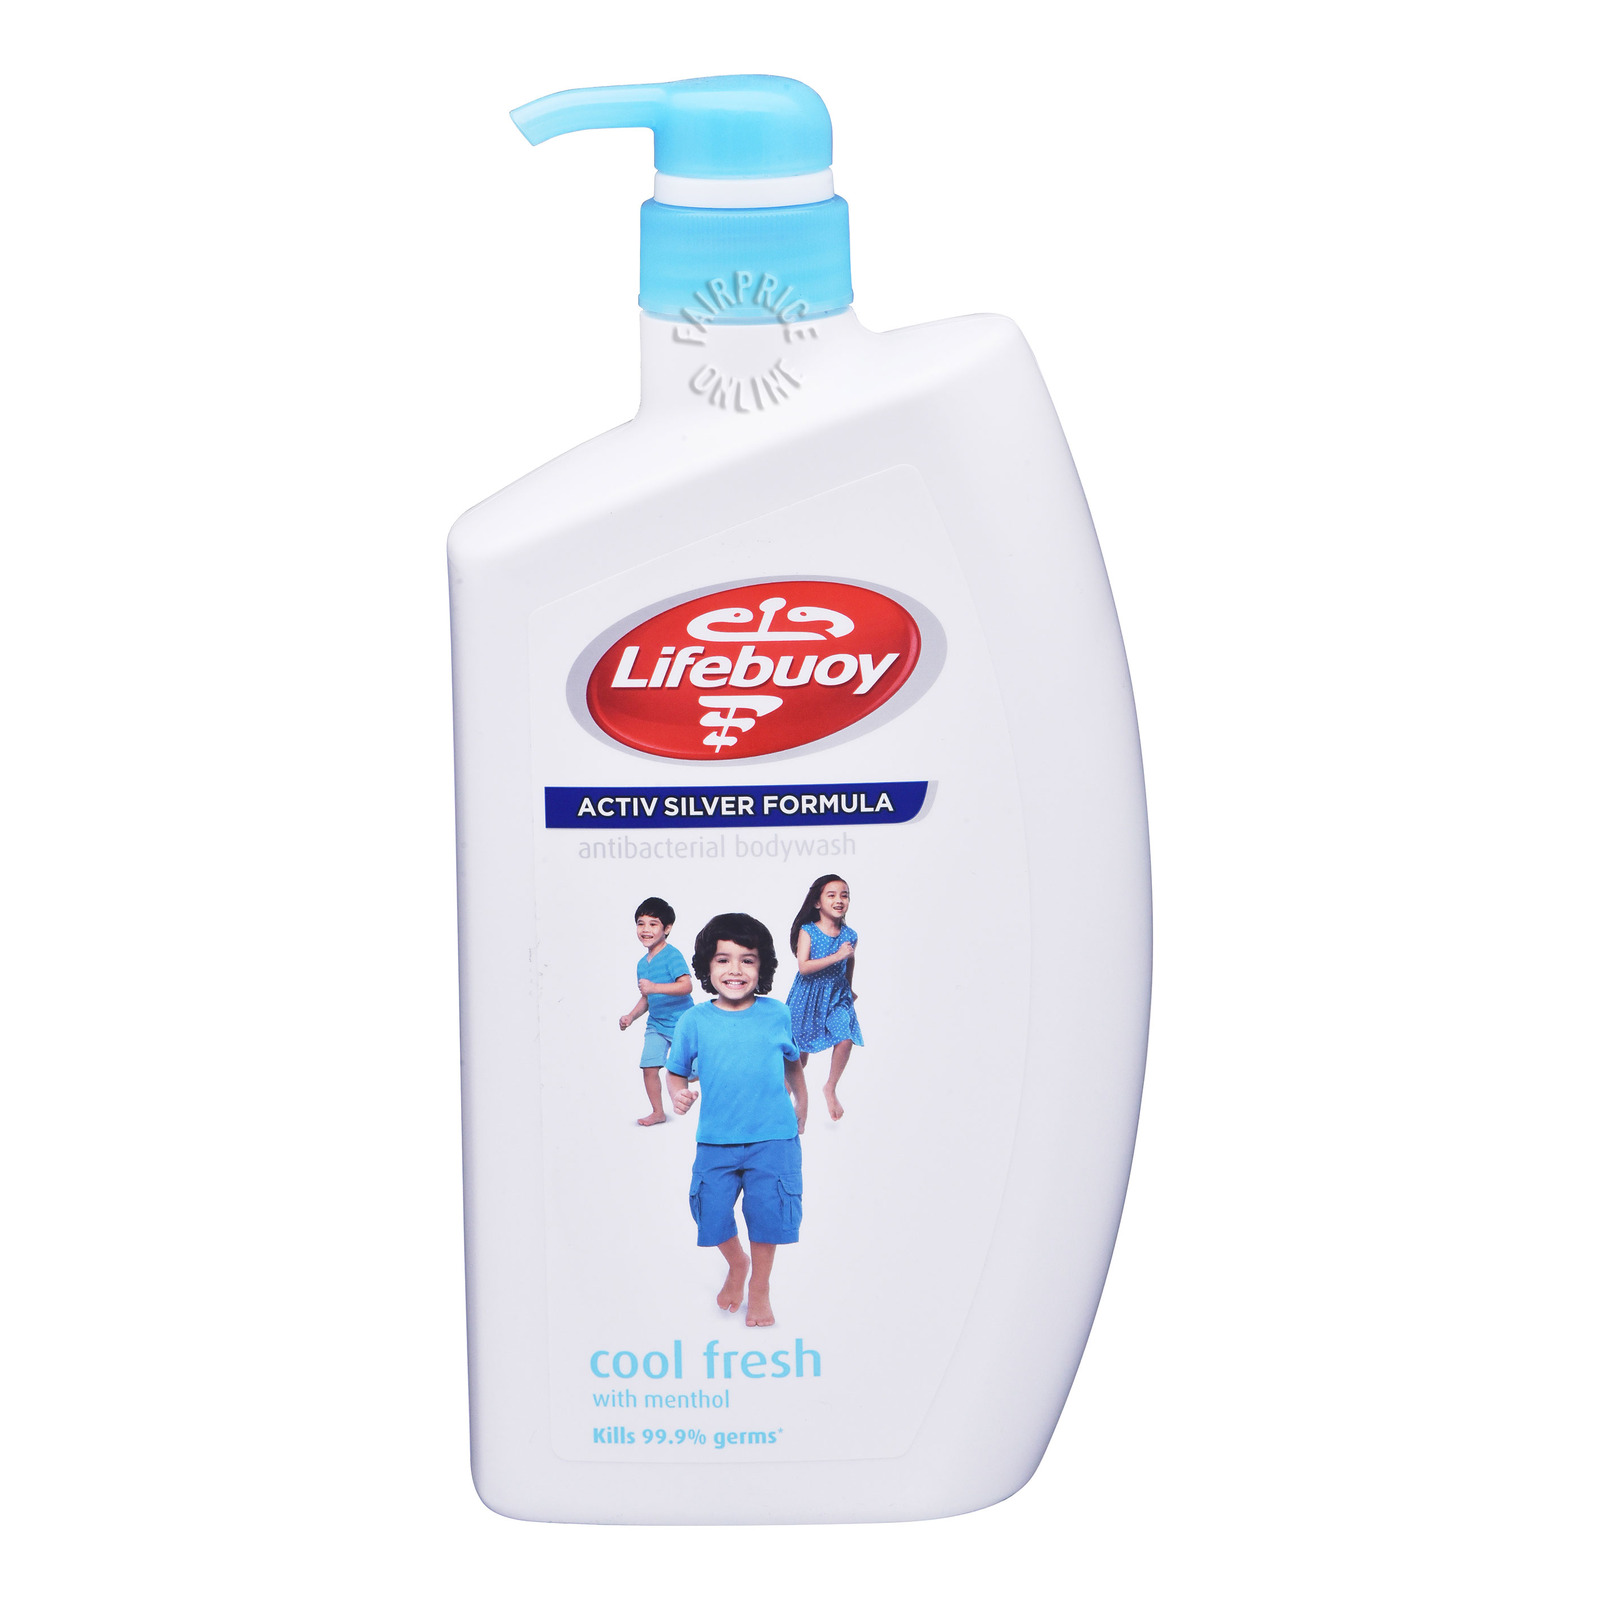 Lifebuoy Antibacterial Body Wash - Cool Fresh